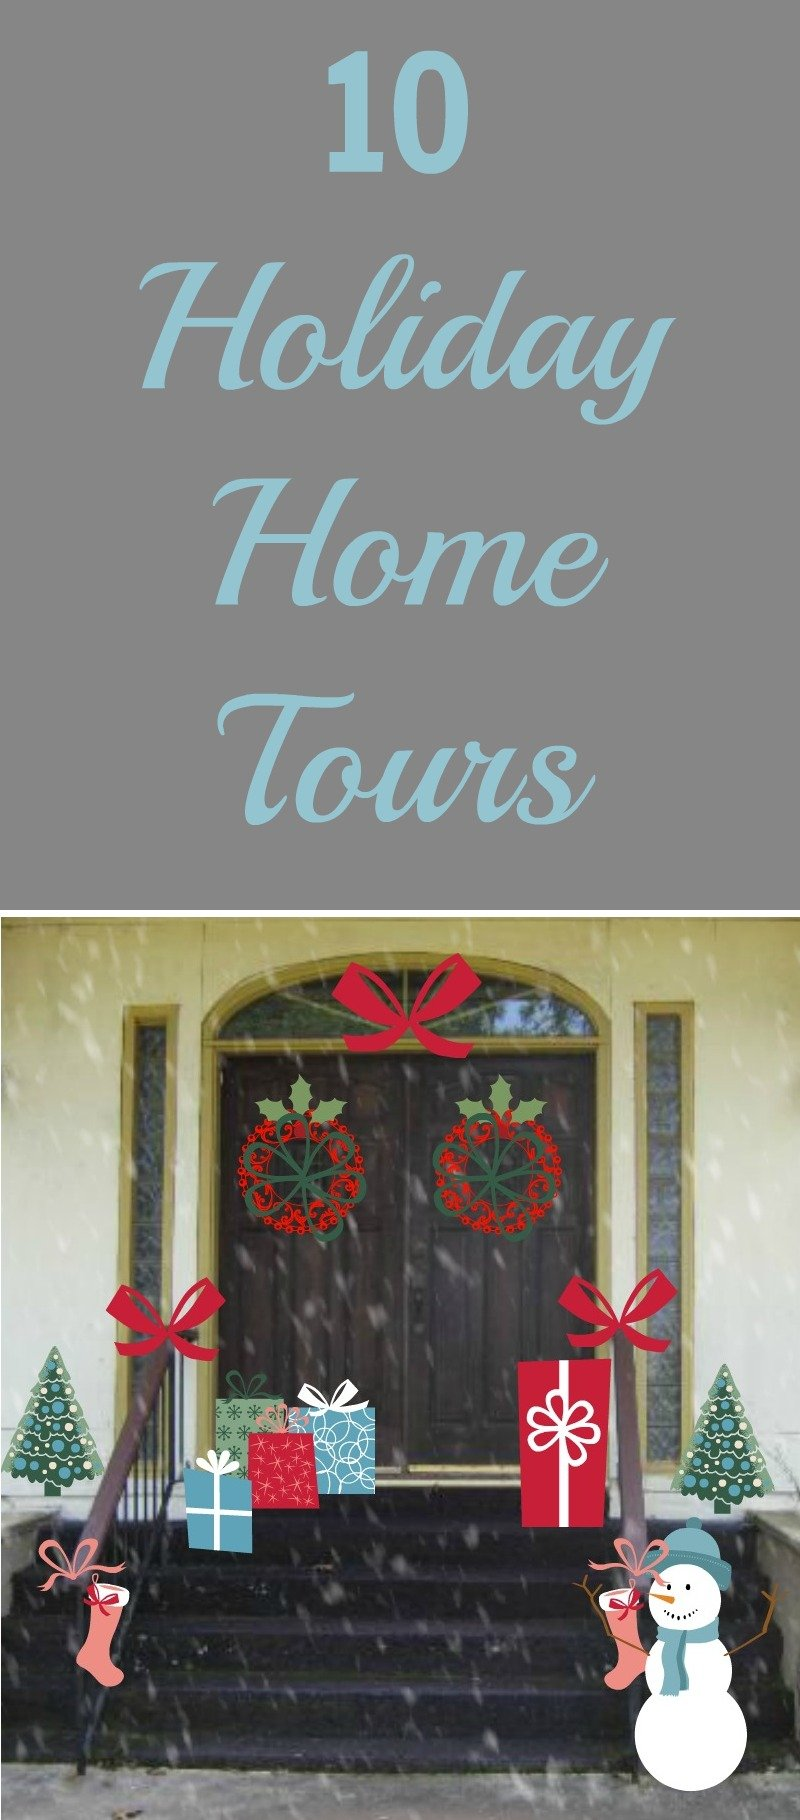 Merry Christmas! 10 Tours Of Holiday Homes